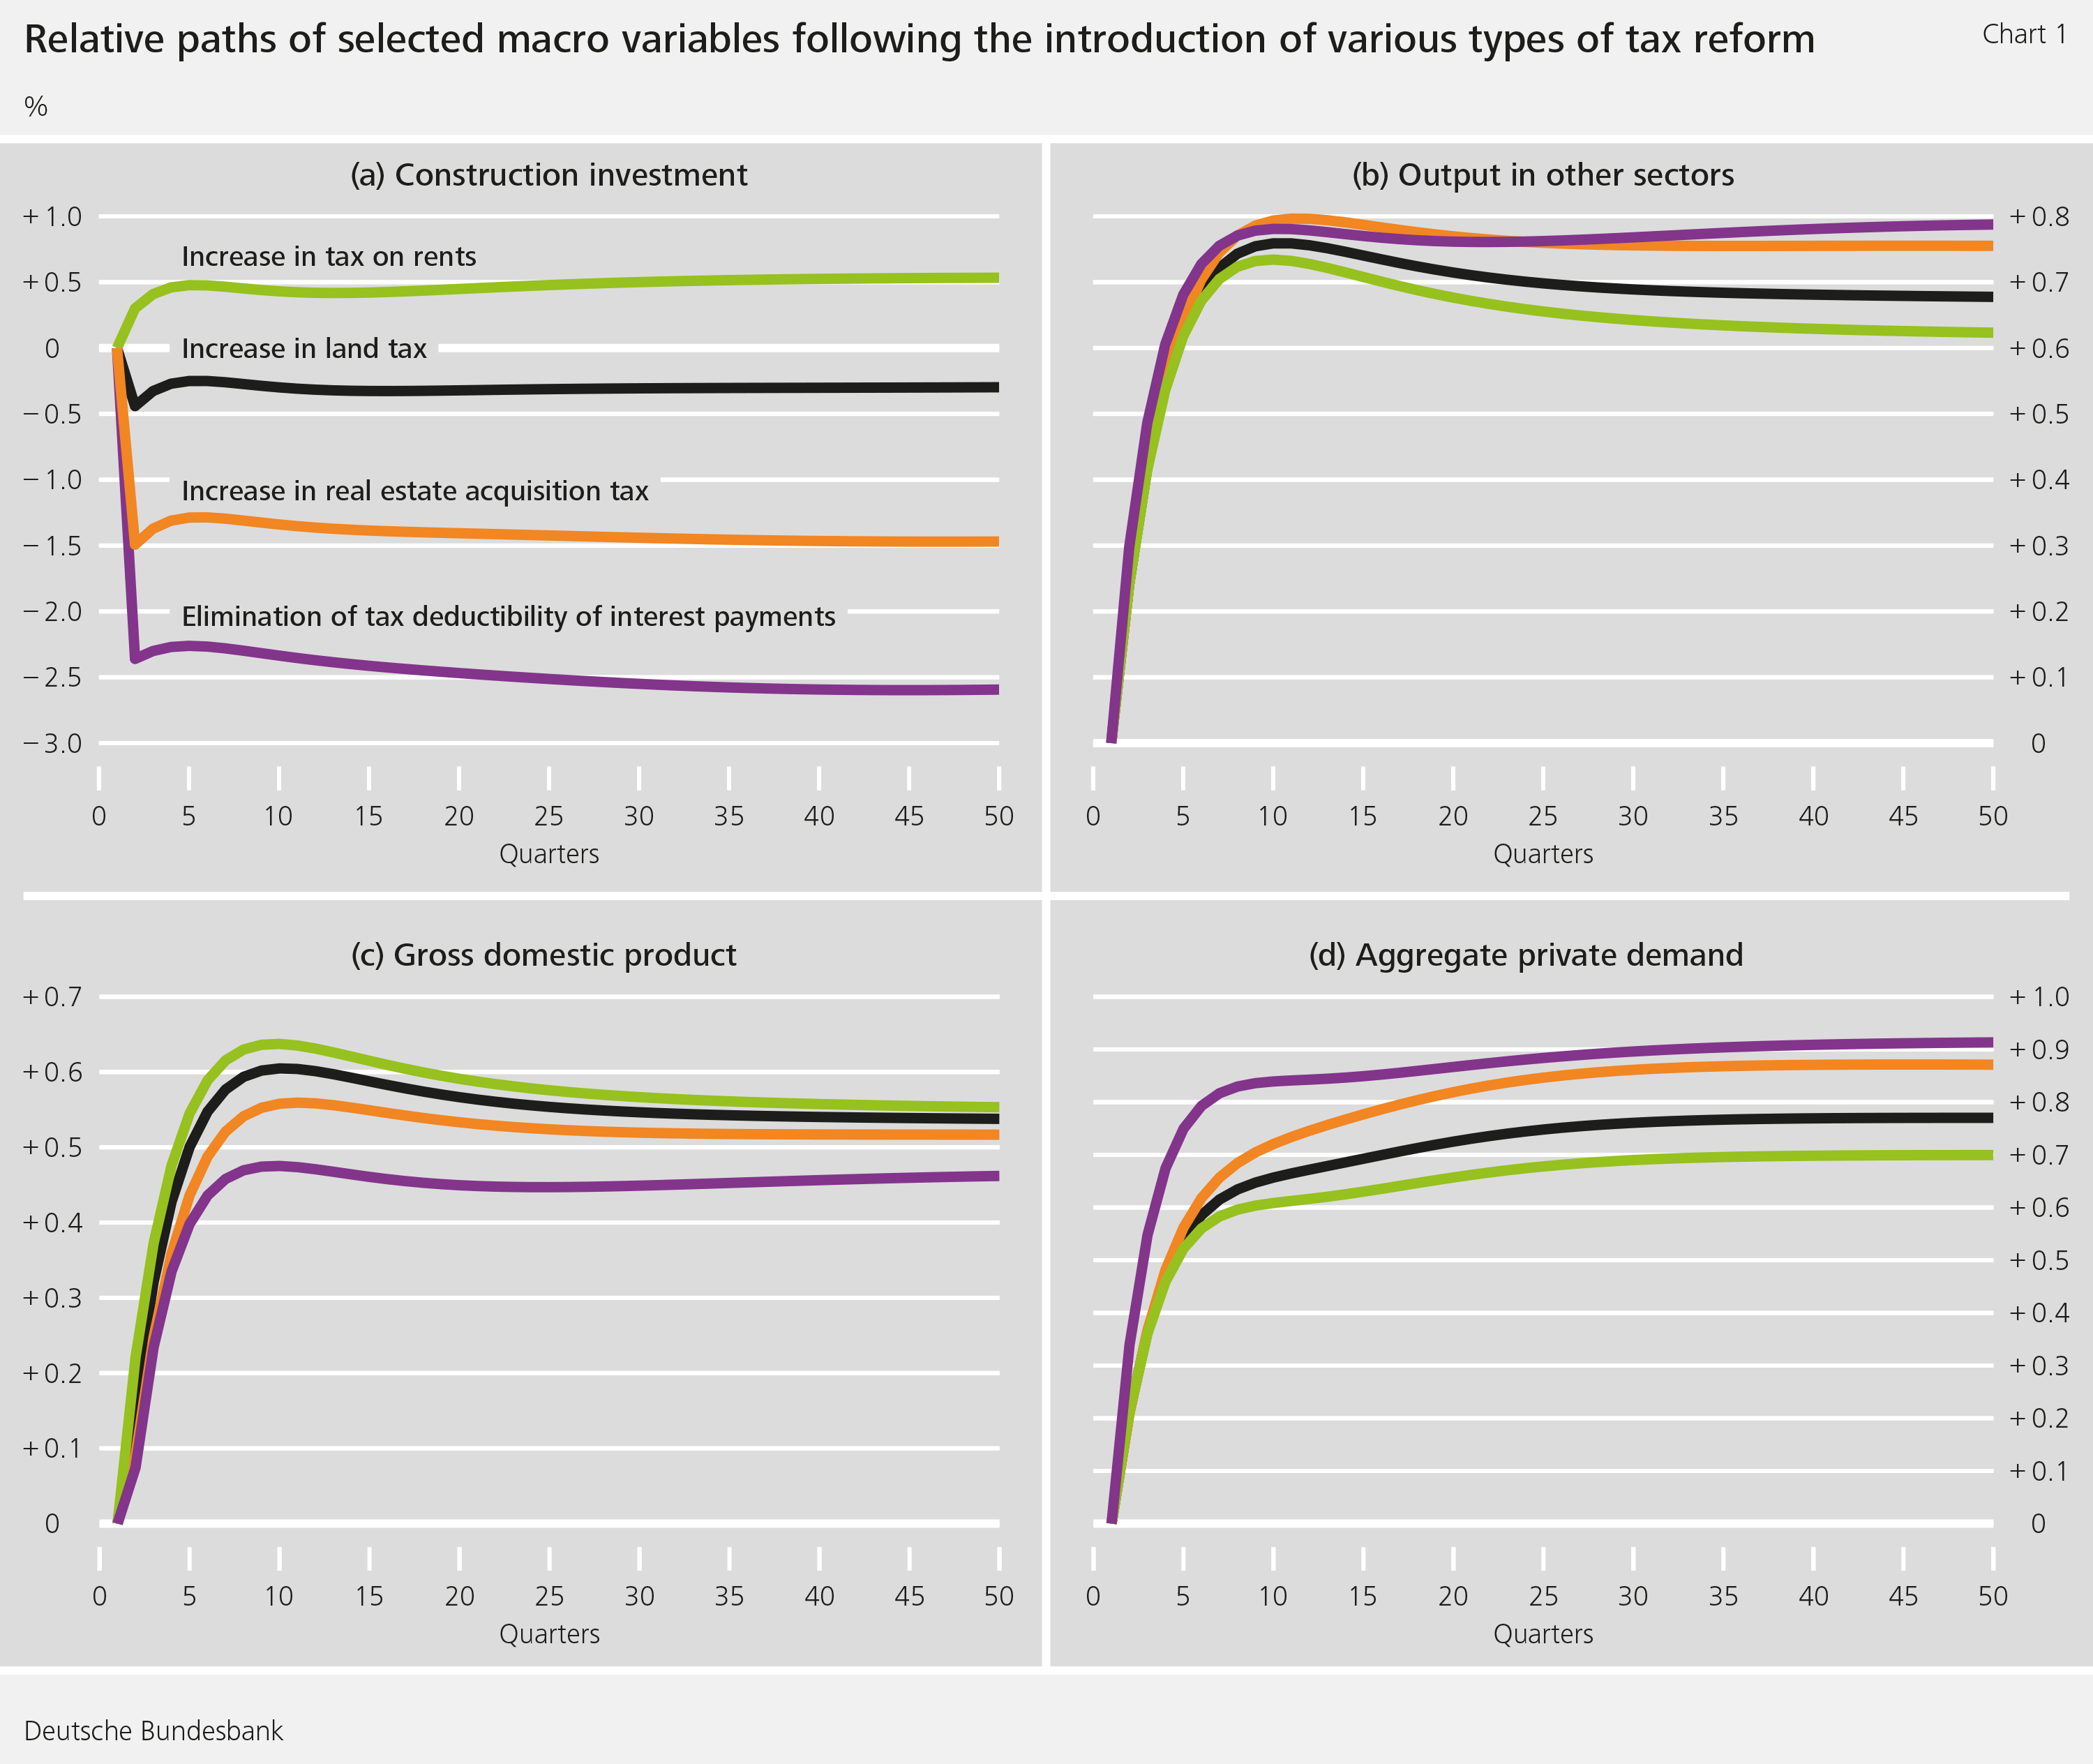 Chart 1: Relative paths of selected macro variables following the introduction of various types of tax reform